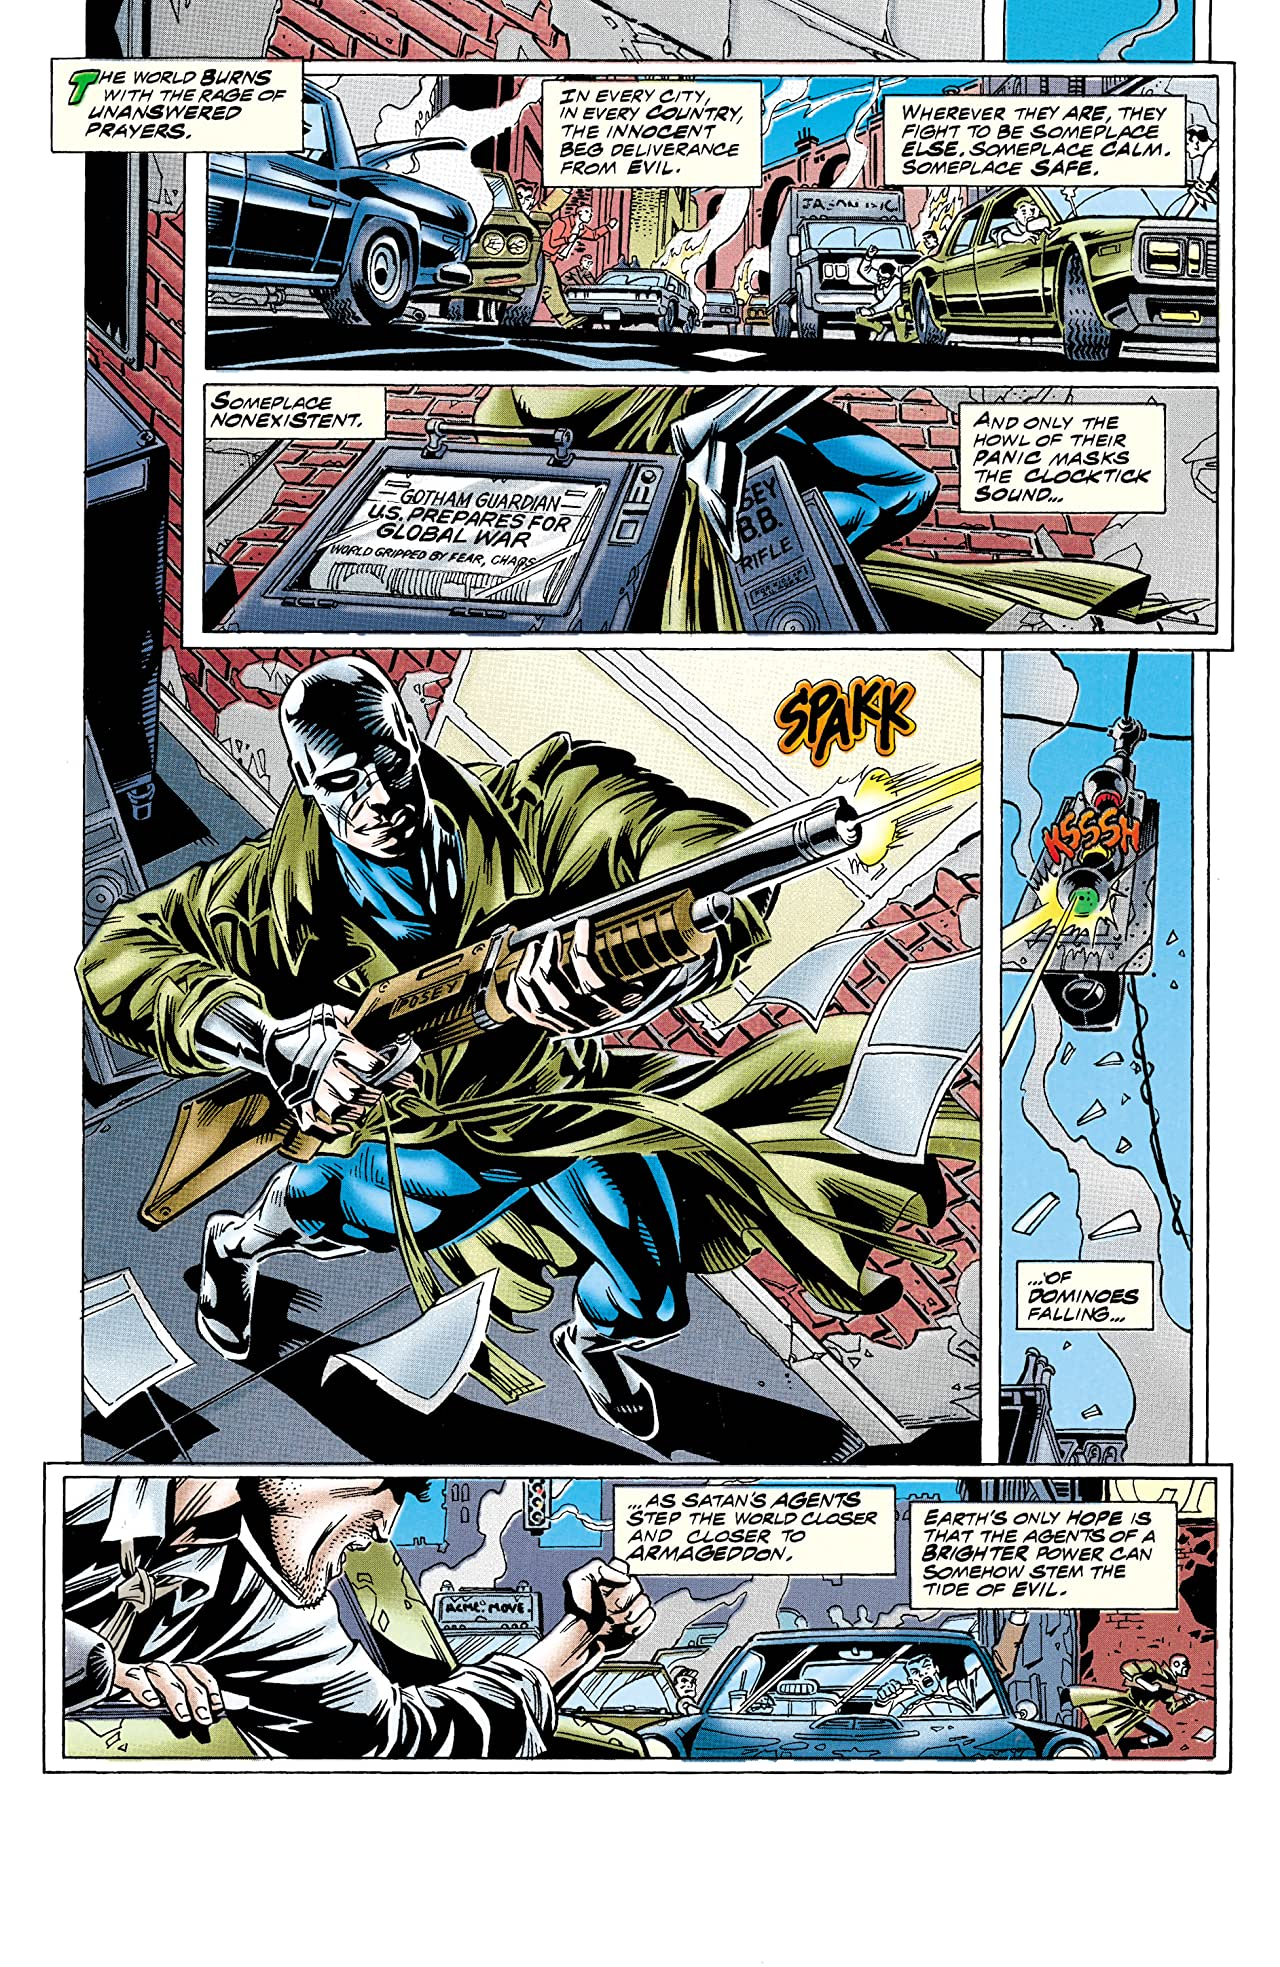 Underworld Unleashed (1995) #3